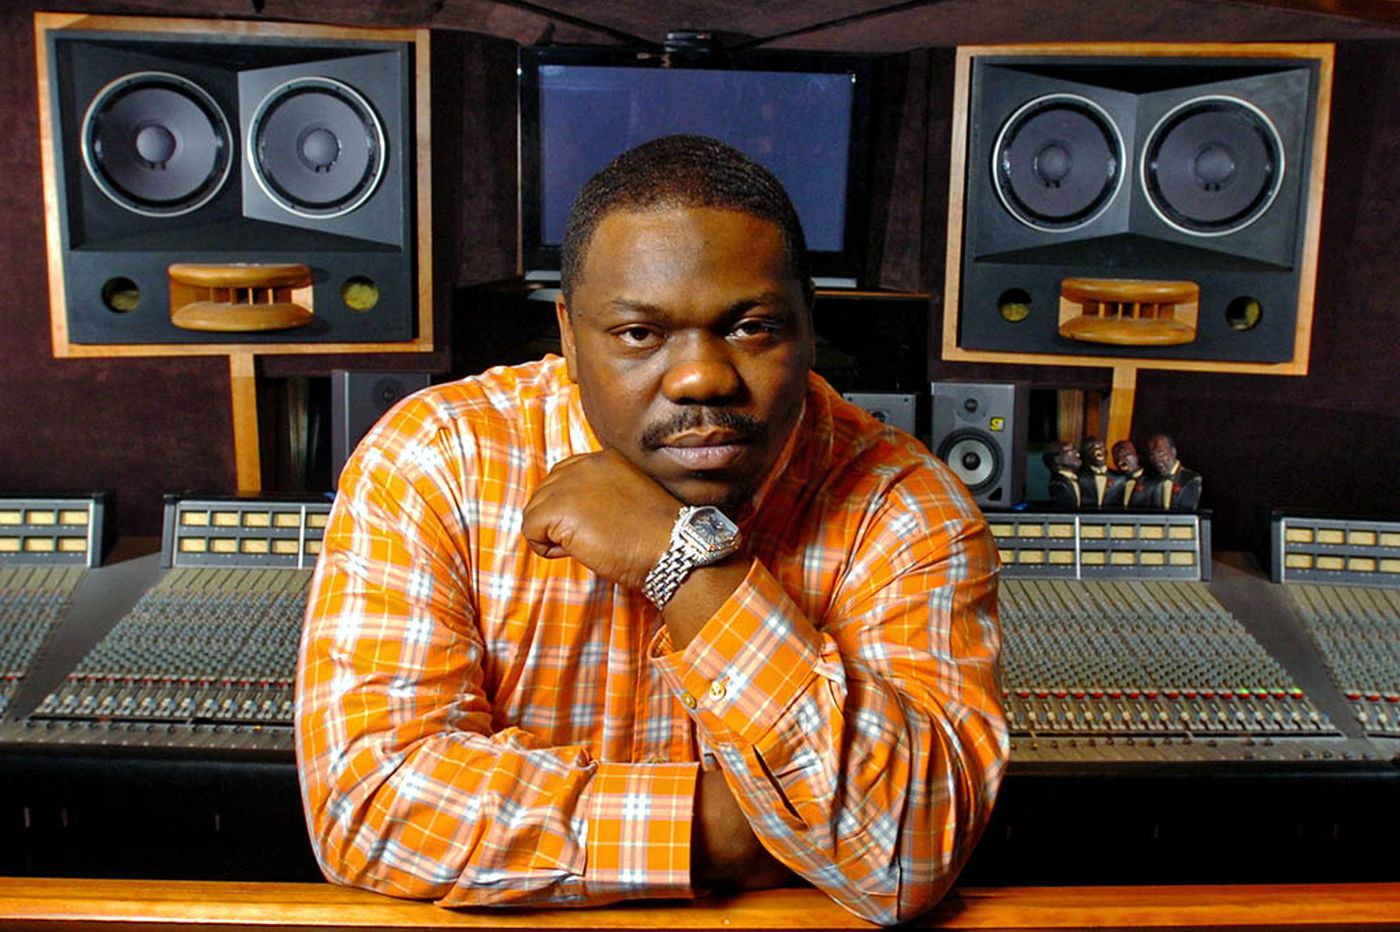 Police: Rapper Beanie Sigel was in 'wrong place, wrong time'